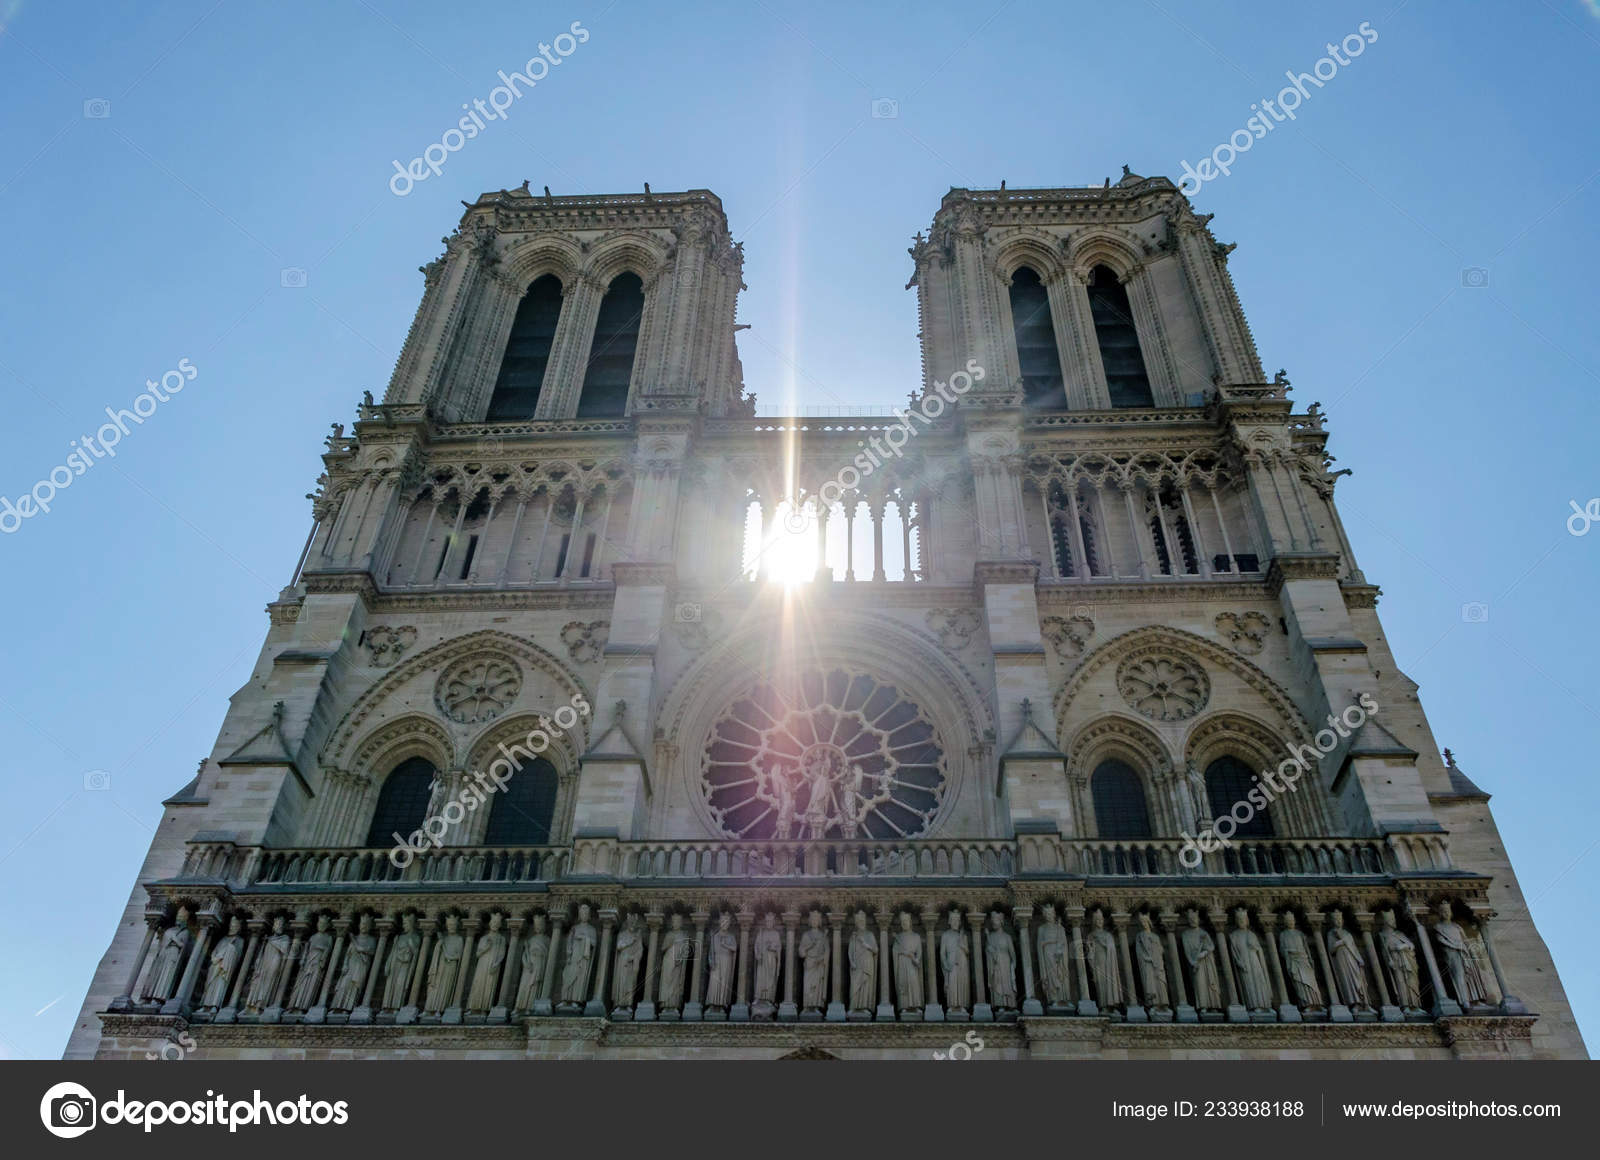 https://st4.depositphotos.com/2051961/23393/i/1600/depositphotos_233938188-stock-photo-notre-dame-with-sun-glare.jpg